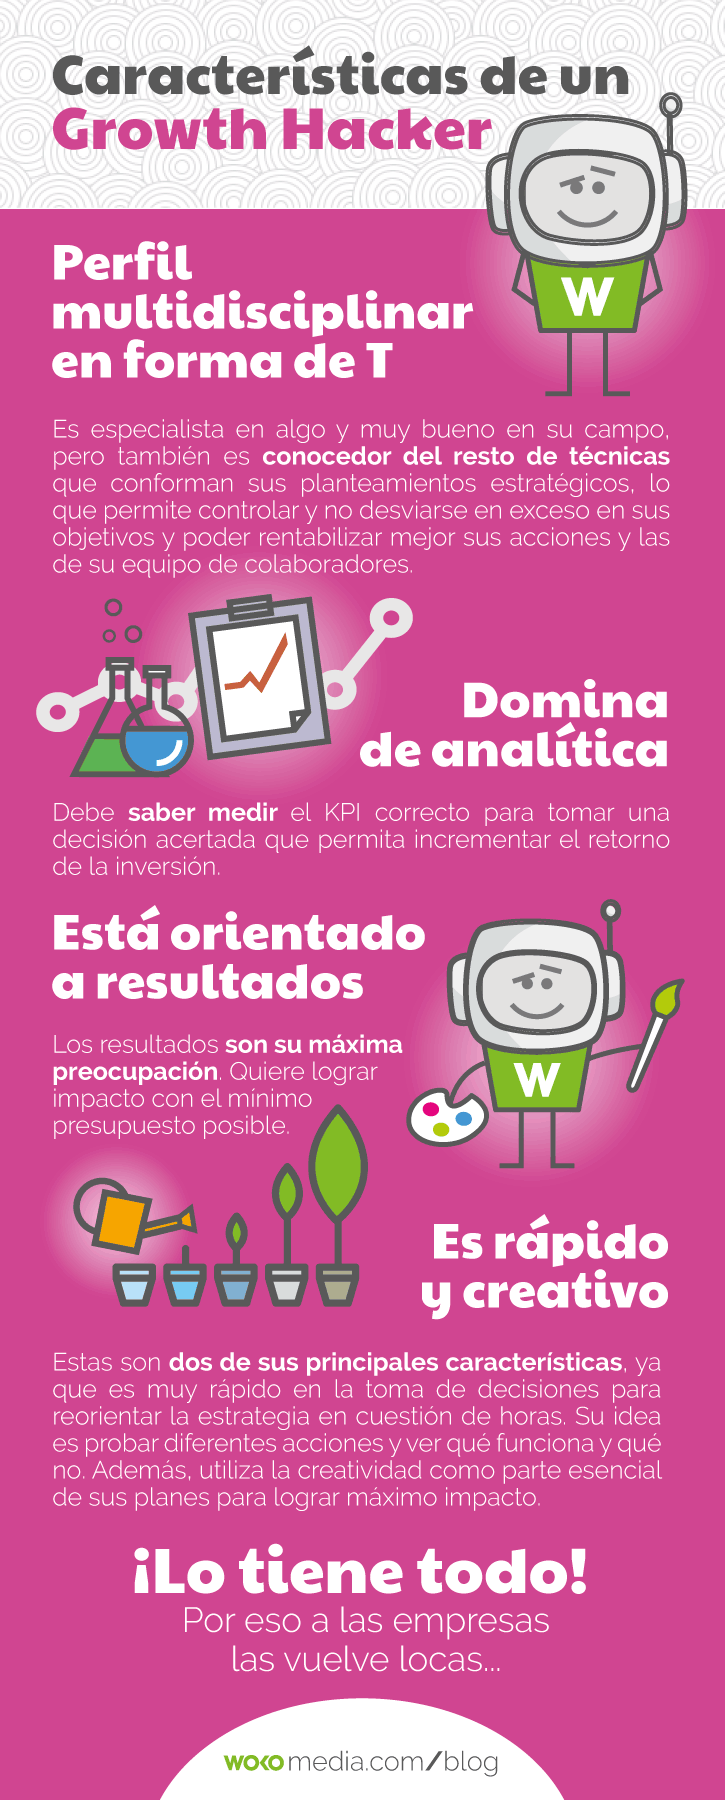 Características de Growth Hacker